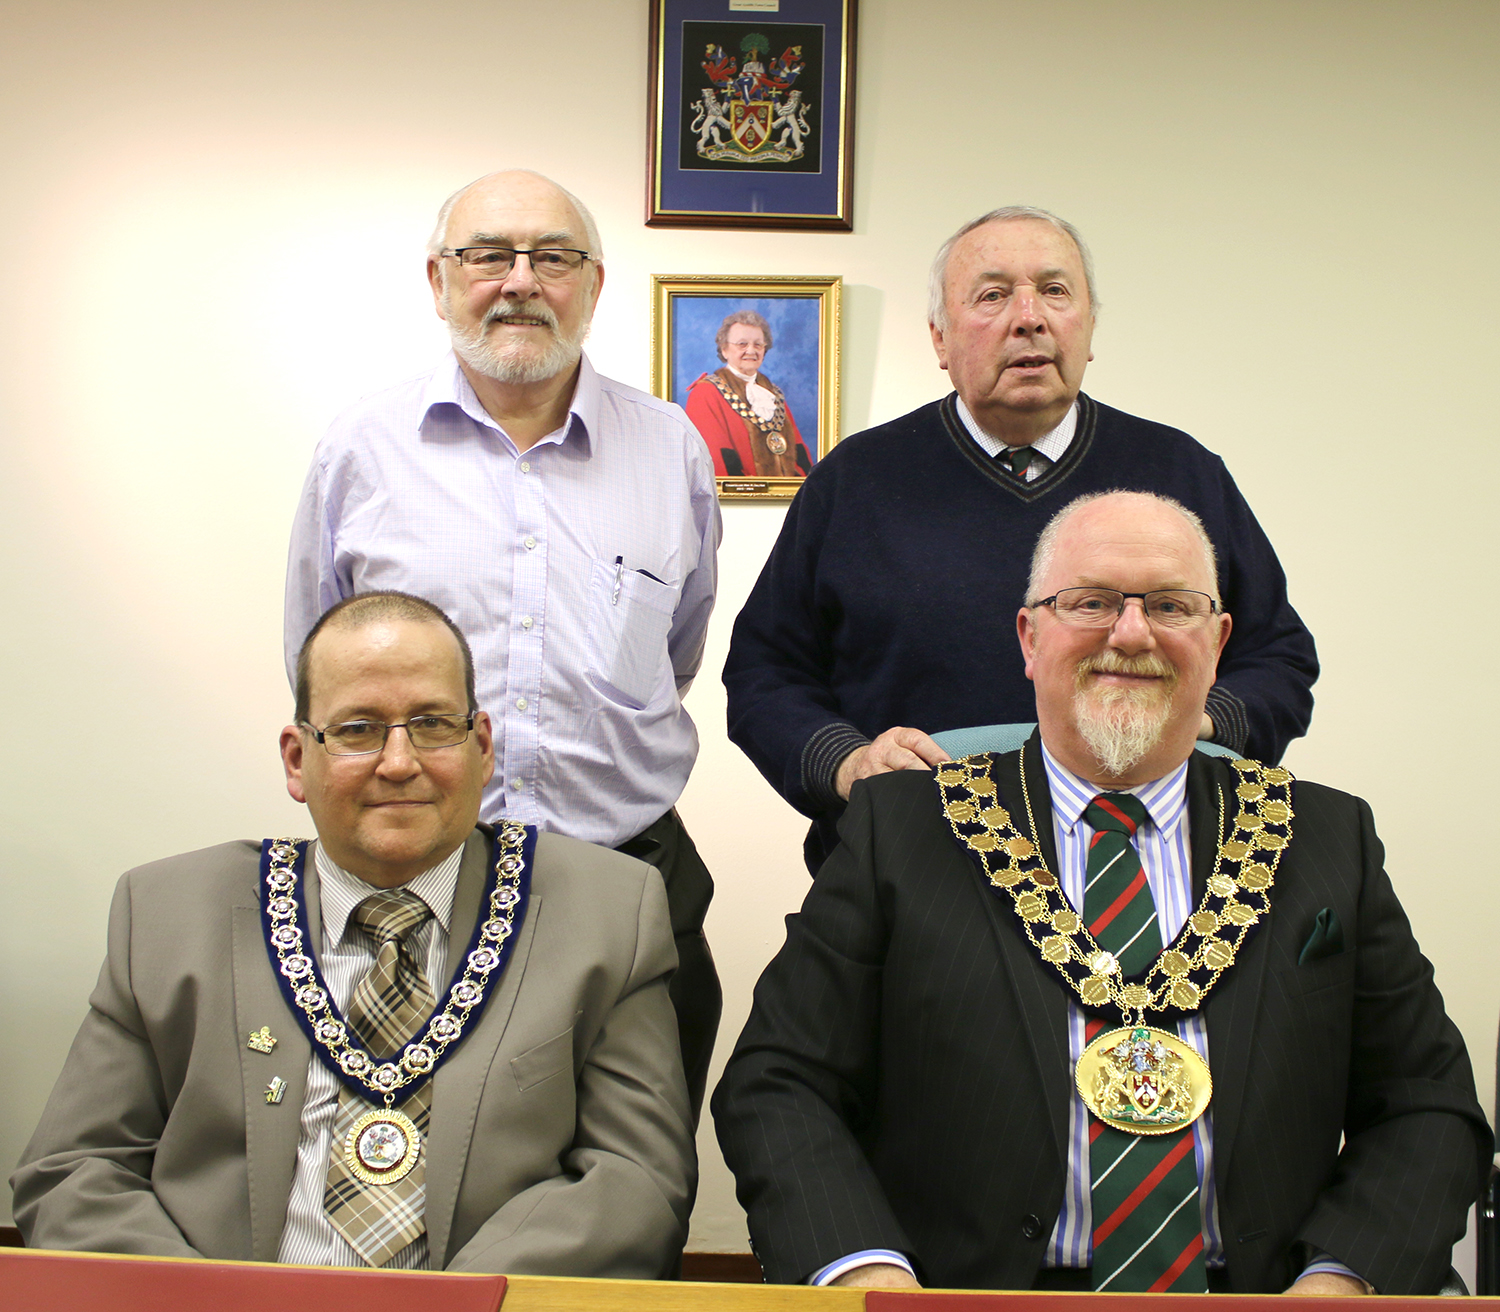 Men in Charge at Great Aycliffe Town Council